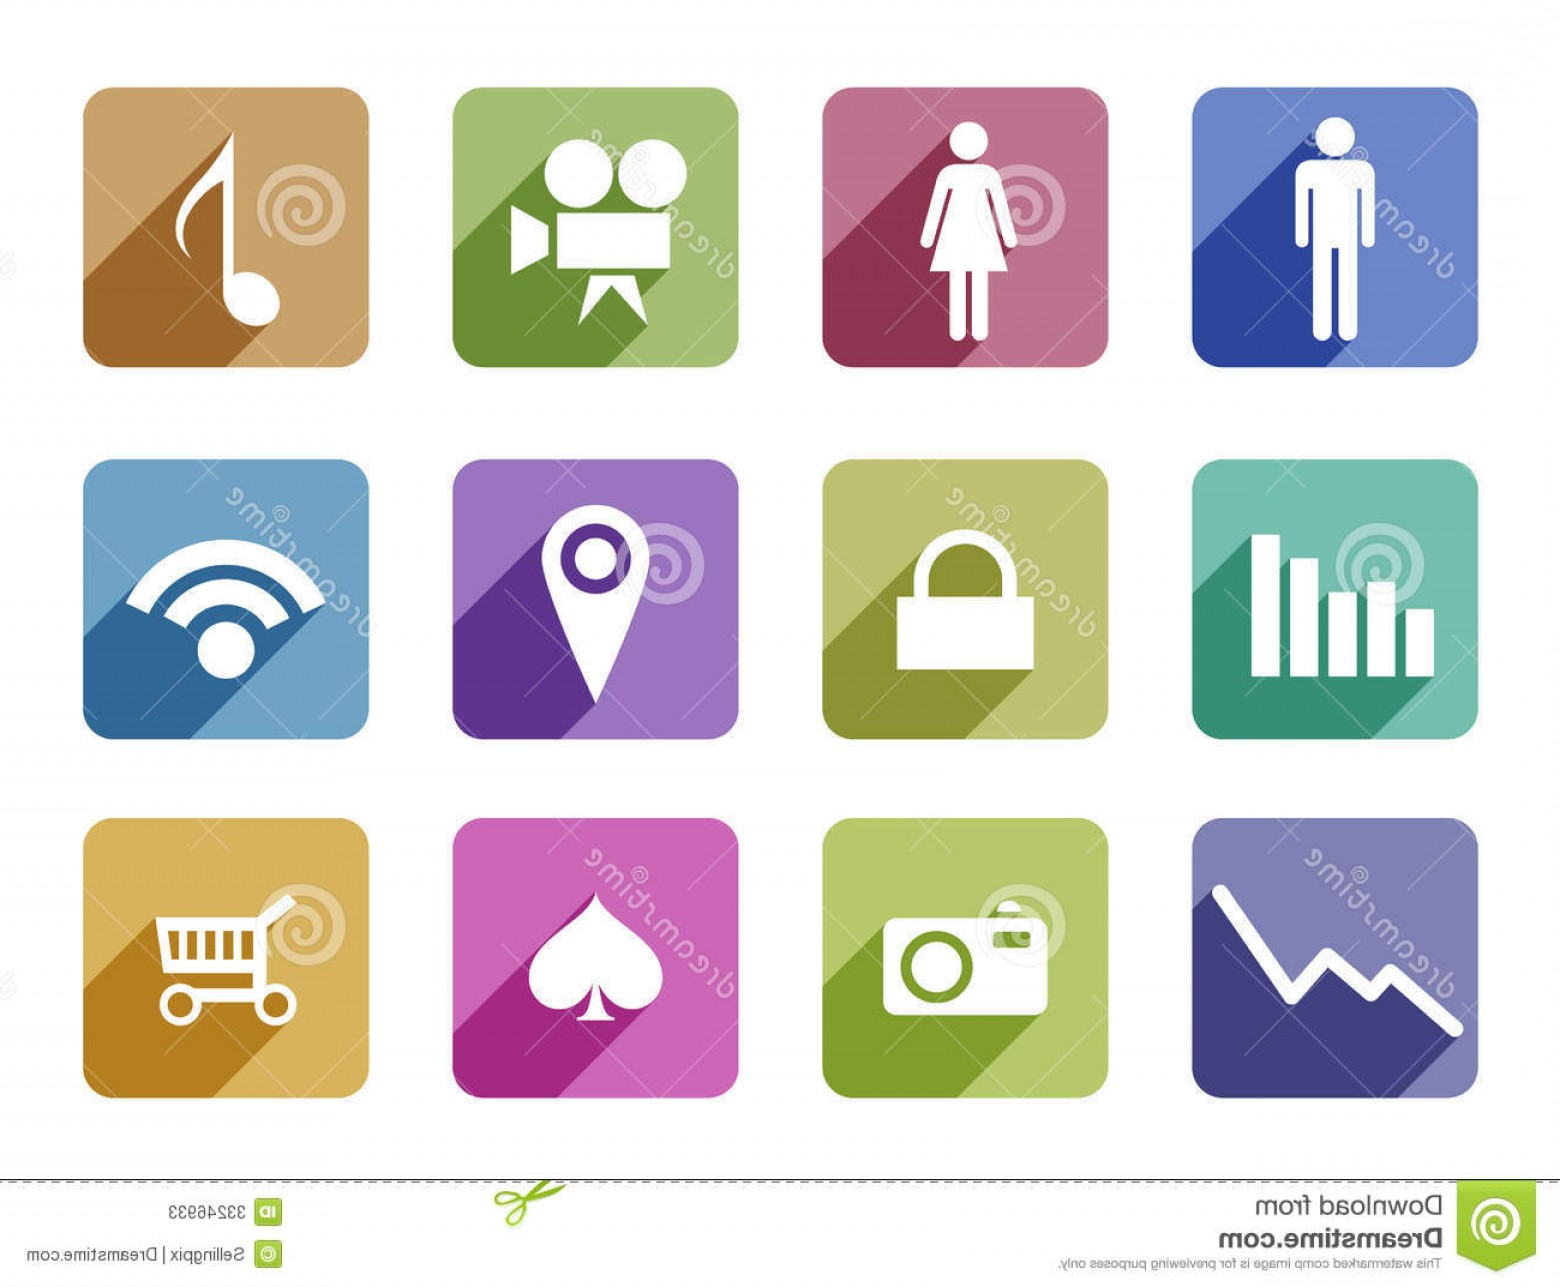 Vector Icons For Designers: Stock Photos Apps Flat Design Vector Icon Set Mobile Applicatio Templates Application Development Trendy Style Icons Creative Image